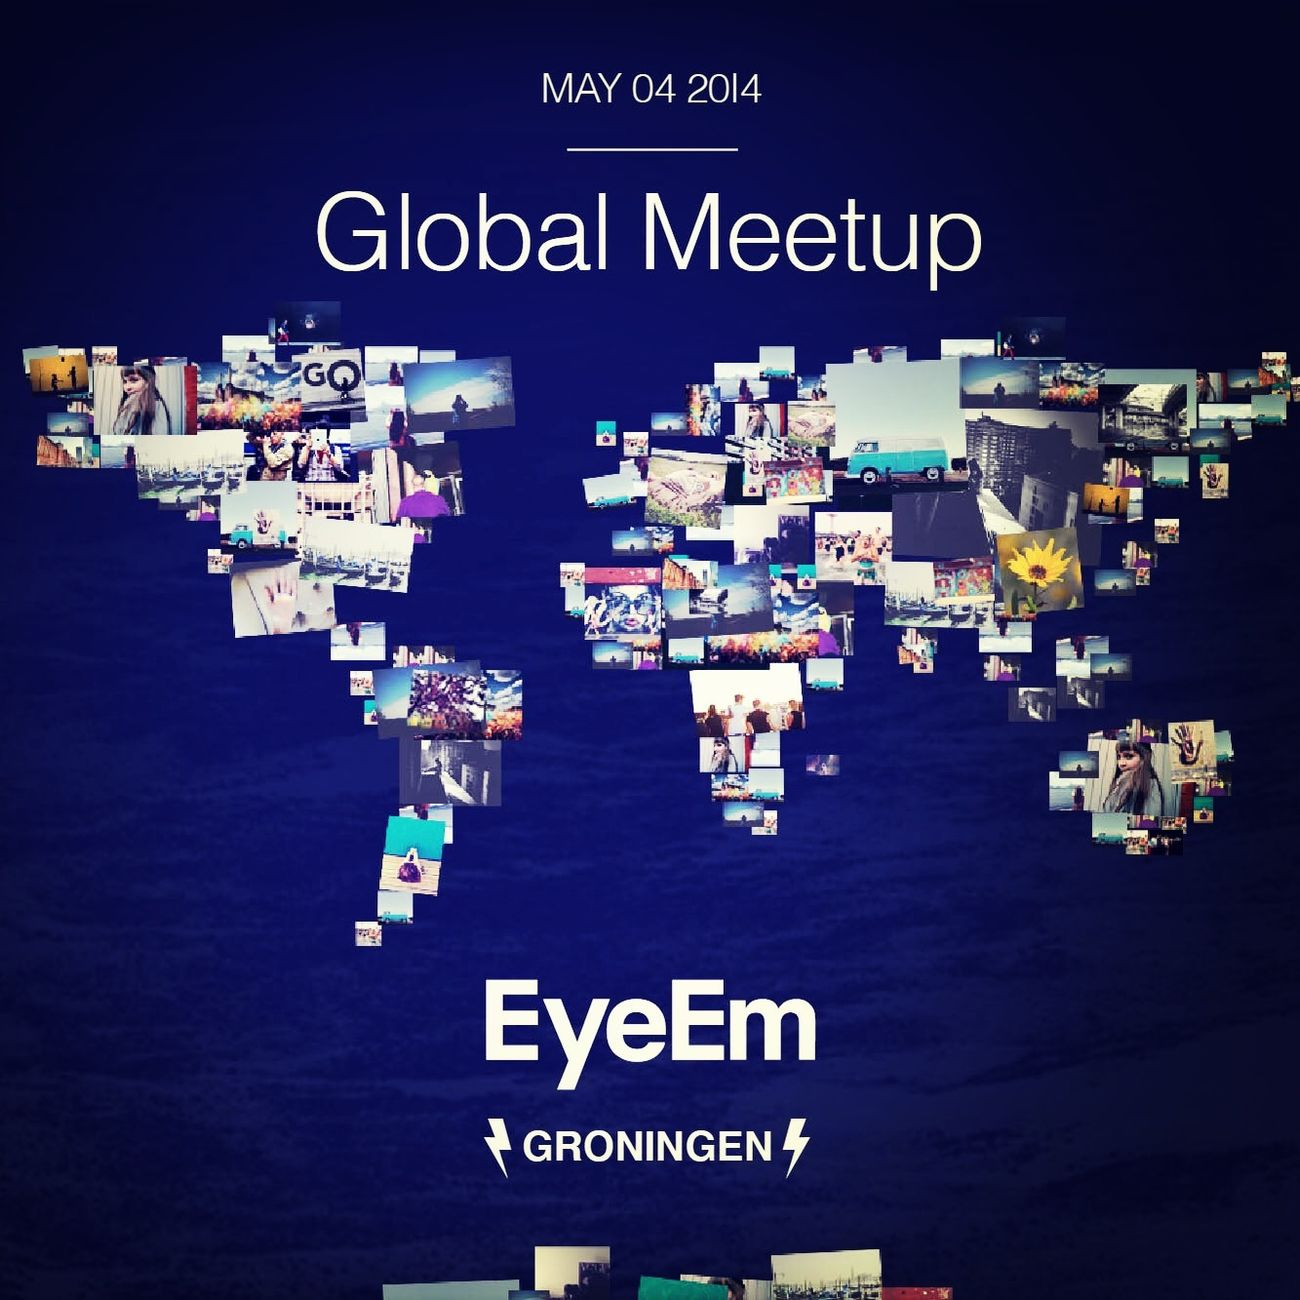 Everyone In Groningen is invited Global EyeEm Meetup Groningen